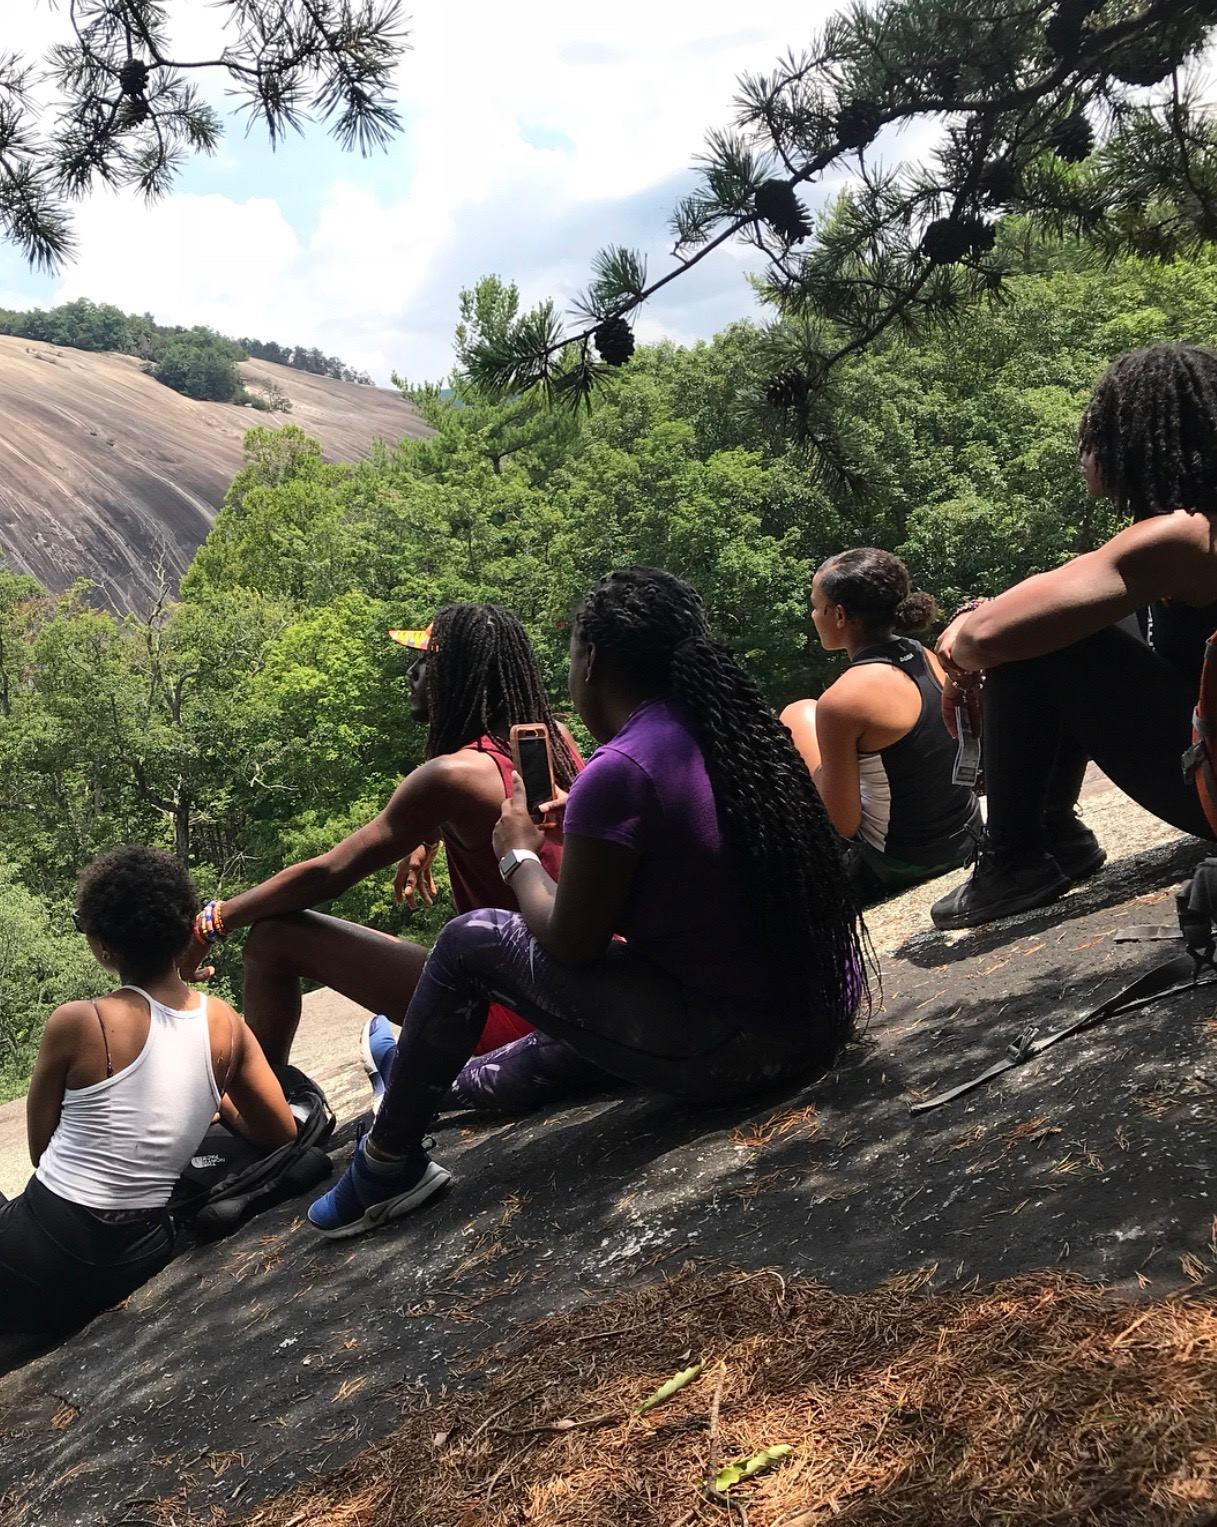 Guided hikes - Our mission is to make nature a preferred destination for all ethnicities by exposing people of color to various indoor and outdoor activities all while providing a welcoming, loving and fun atmosphere.